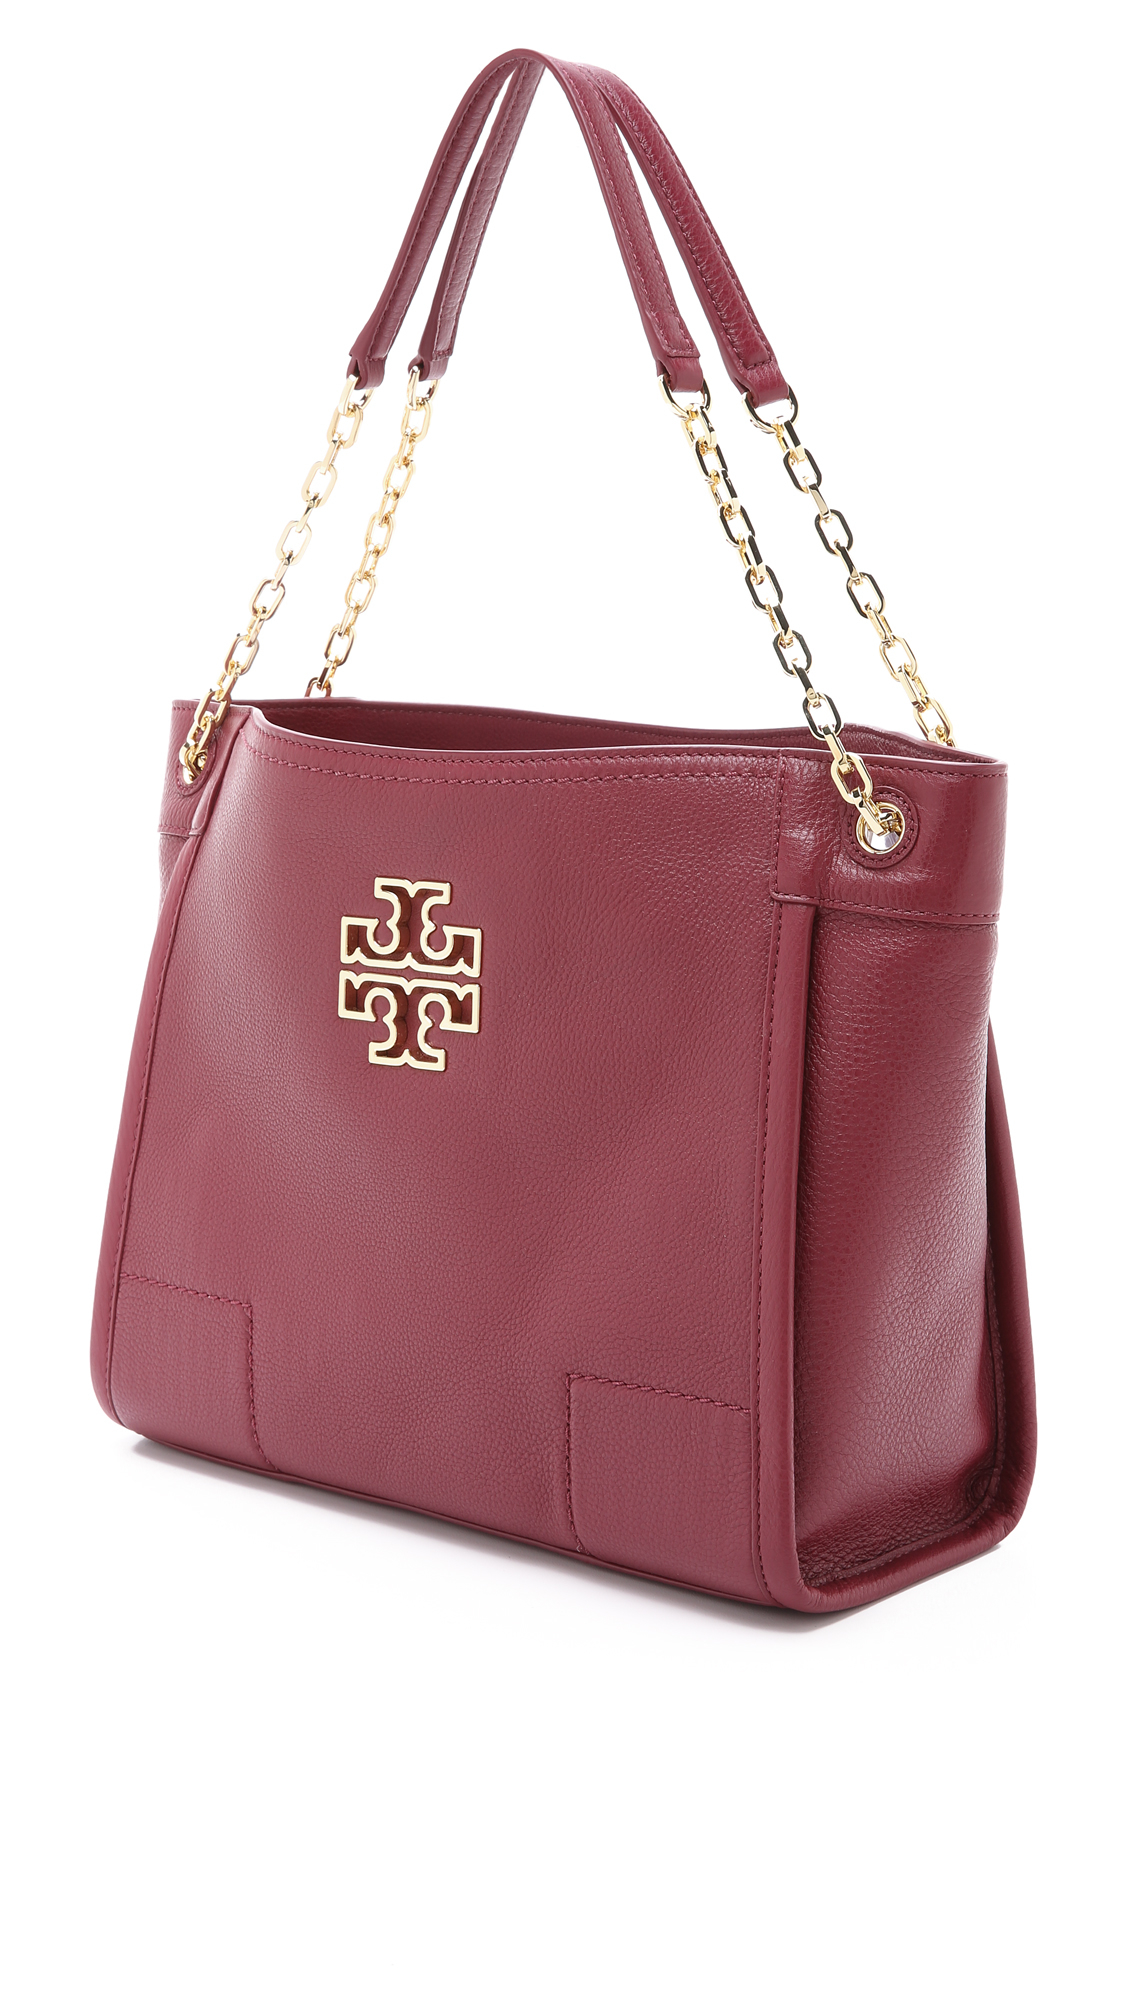 tory-burch-red-agate-britten-small-slouchy-tote-bark-red-product-3-330613413-normal.jpeg